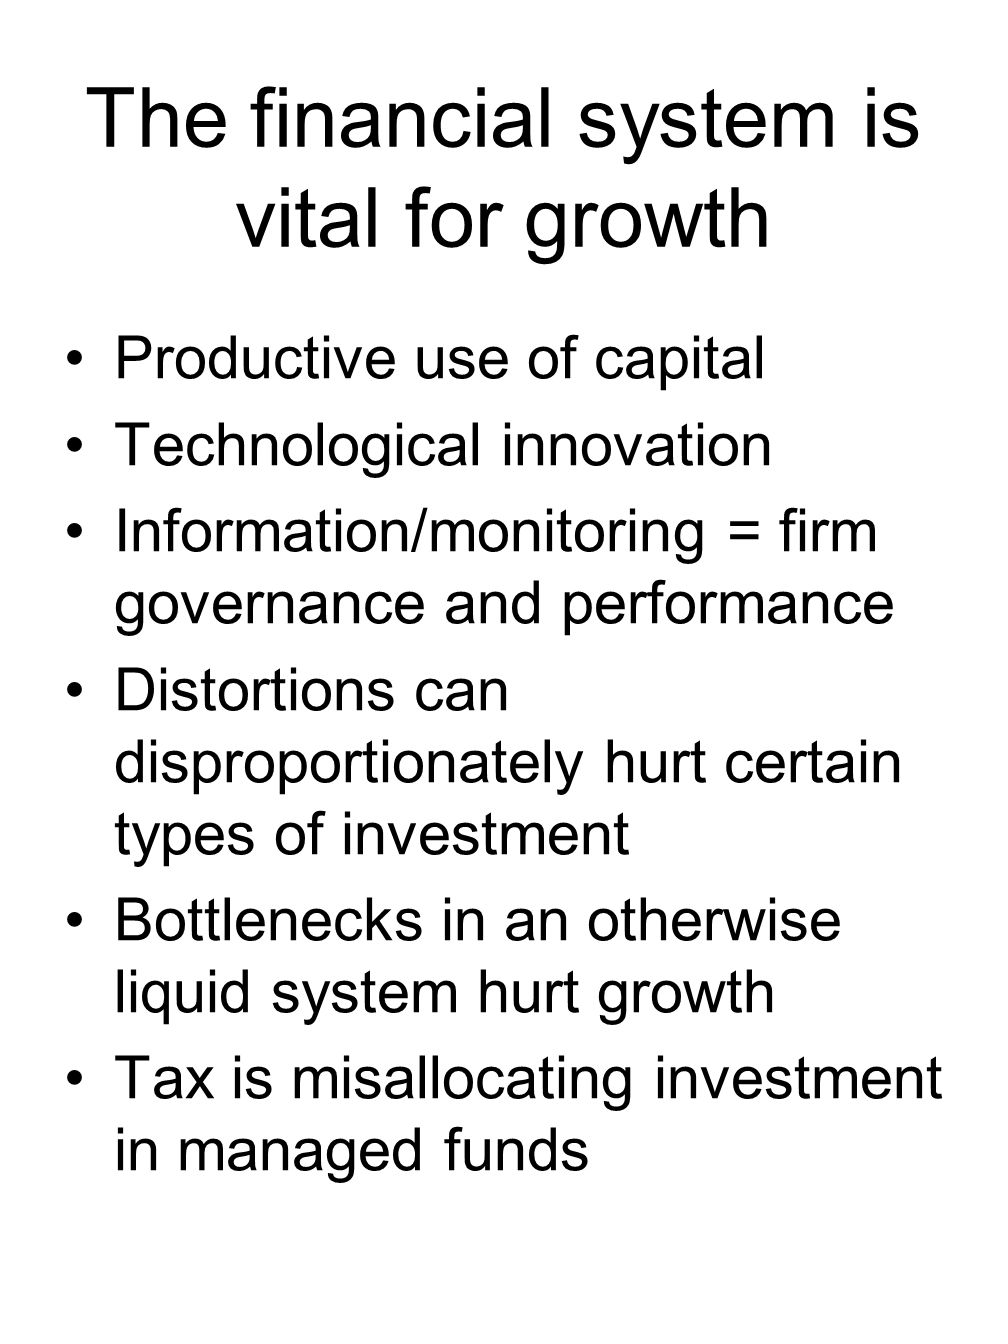 The financial system is vital for growth Productive use of capital Technological innovation Information/monitoring = firm governance and performance Distortions can disproportionately hurt certain types of investment Bottlenecks in an otherwise liquid system hurt growth Tax is misallocating investment in managed funds